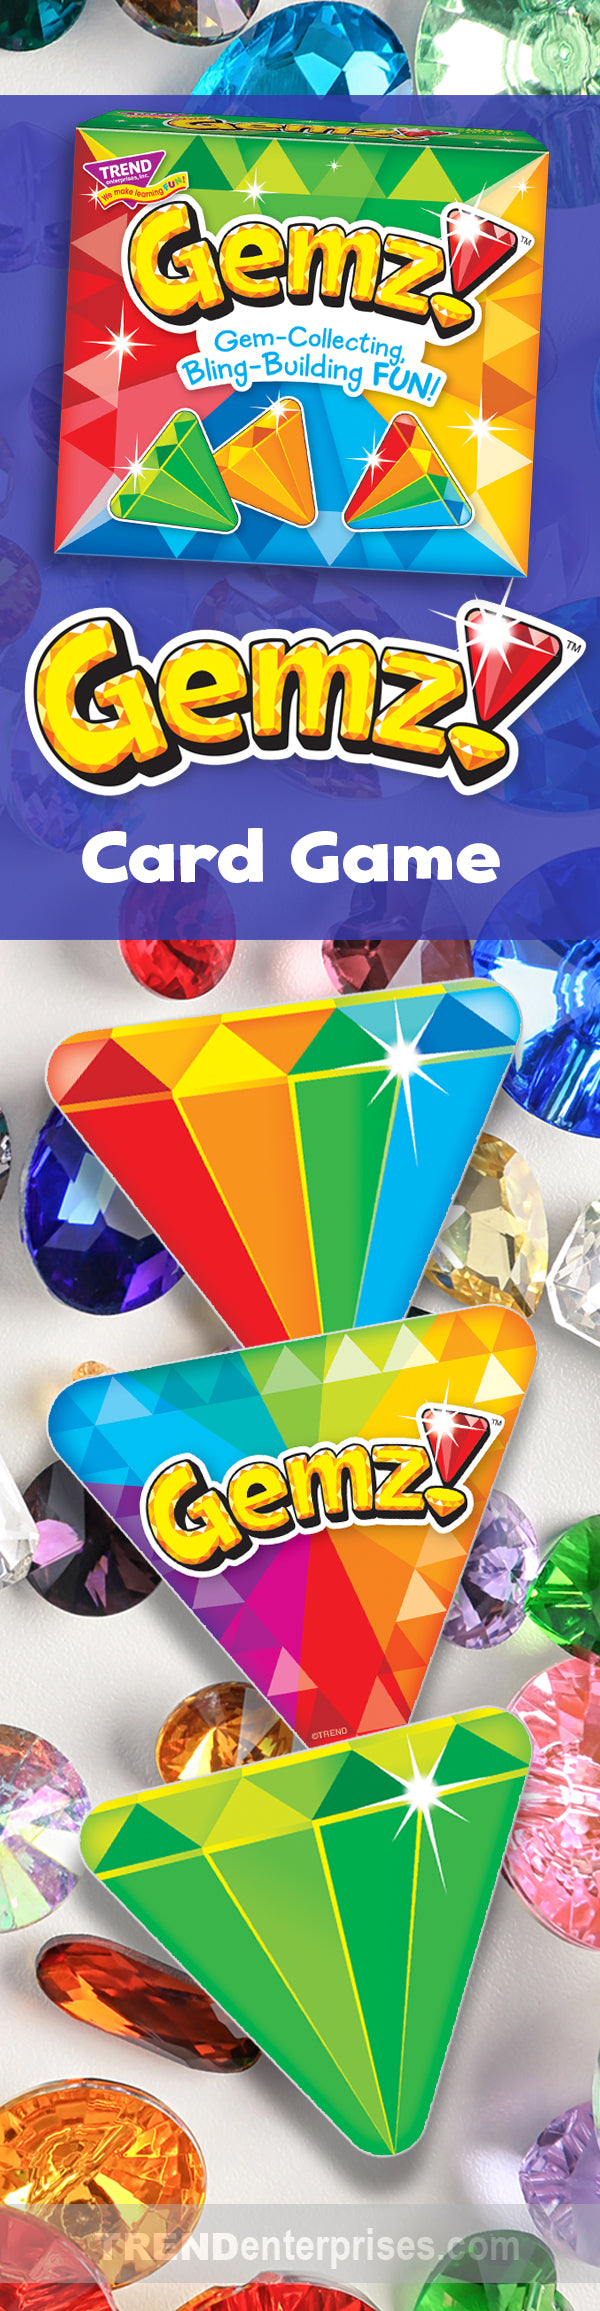 Gemz!™ fun family card game for all ages! Get ready for gem-collecting, bling-building FUN! Draw, swap, and switch out cards to watch your gem take shape. Match all six sides to win!